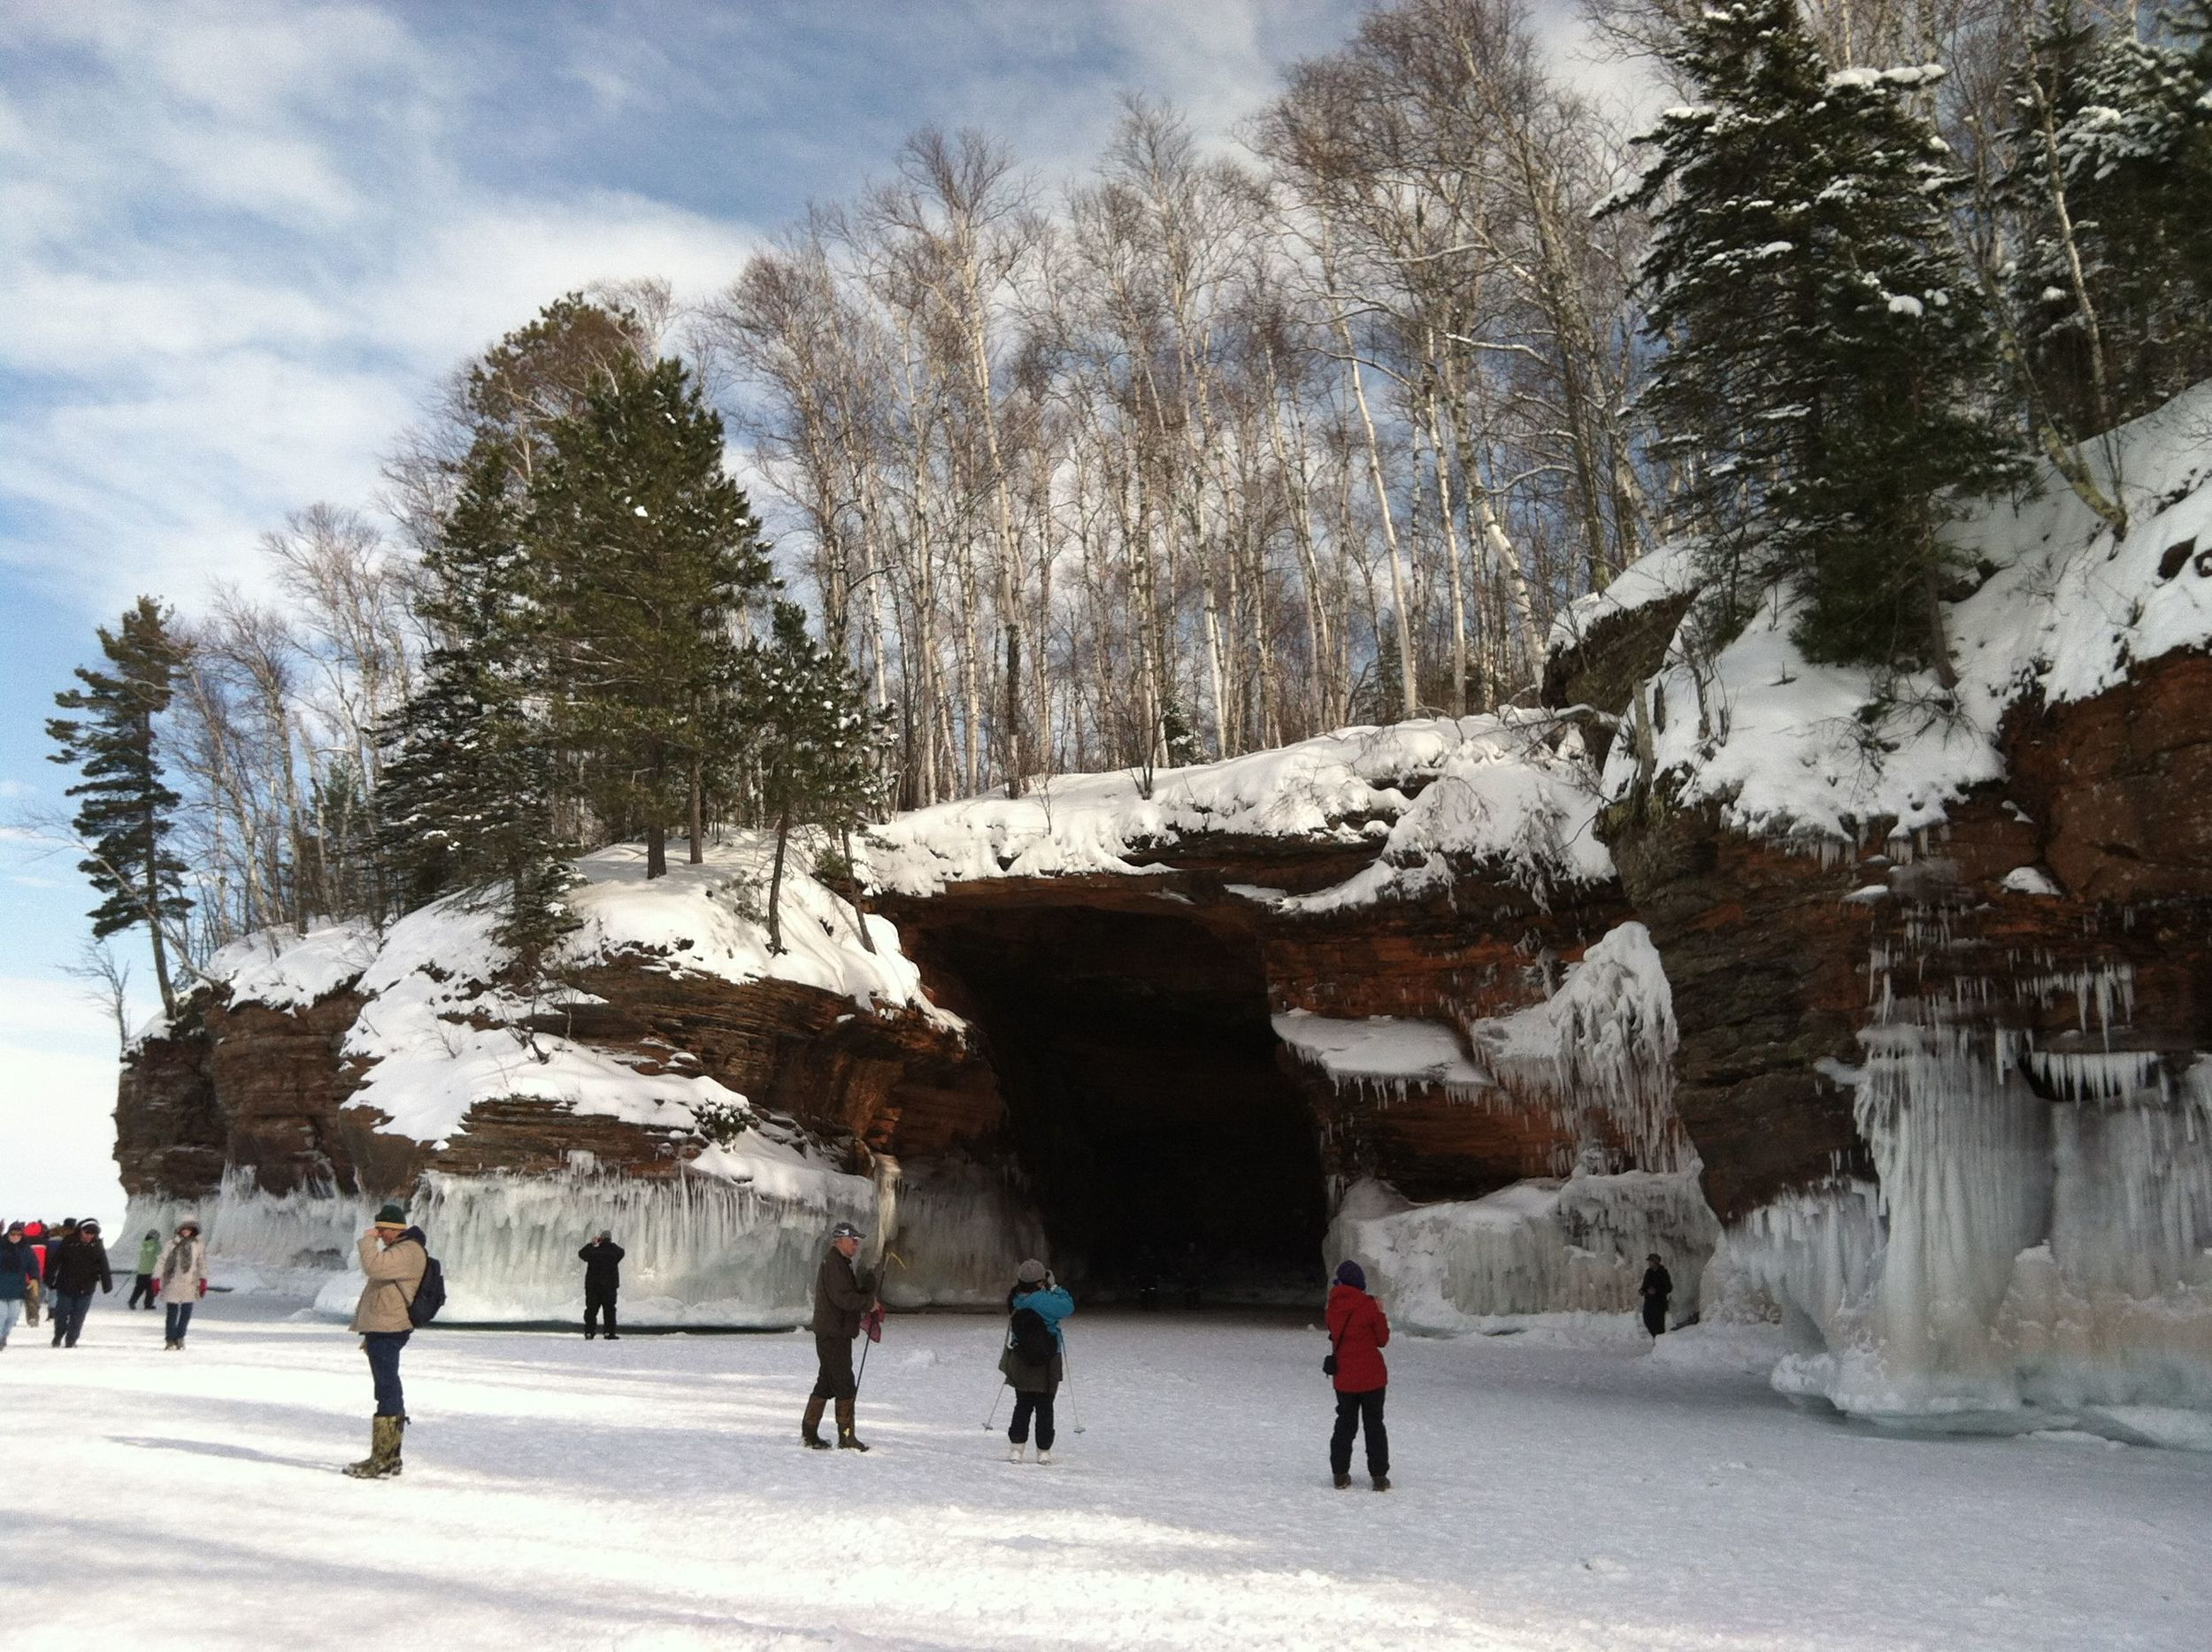 Our extreme winter made the south shore ice caves accessible to thousands of visitors.